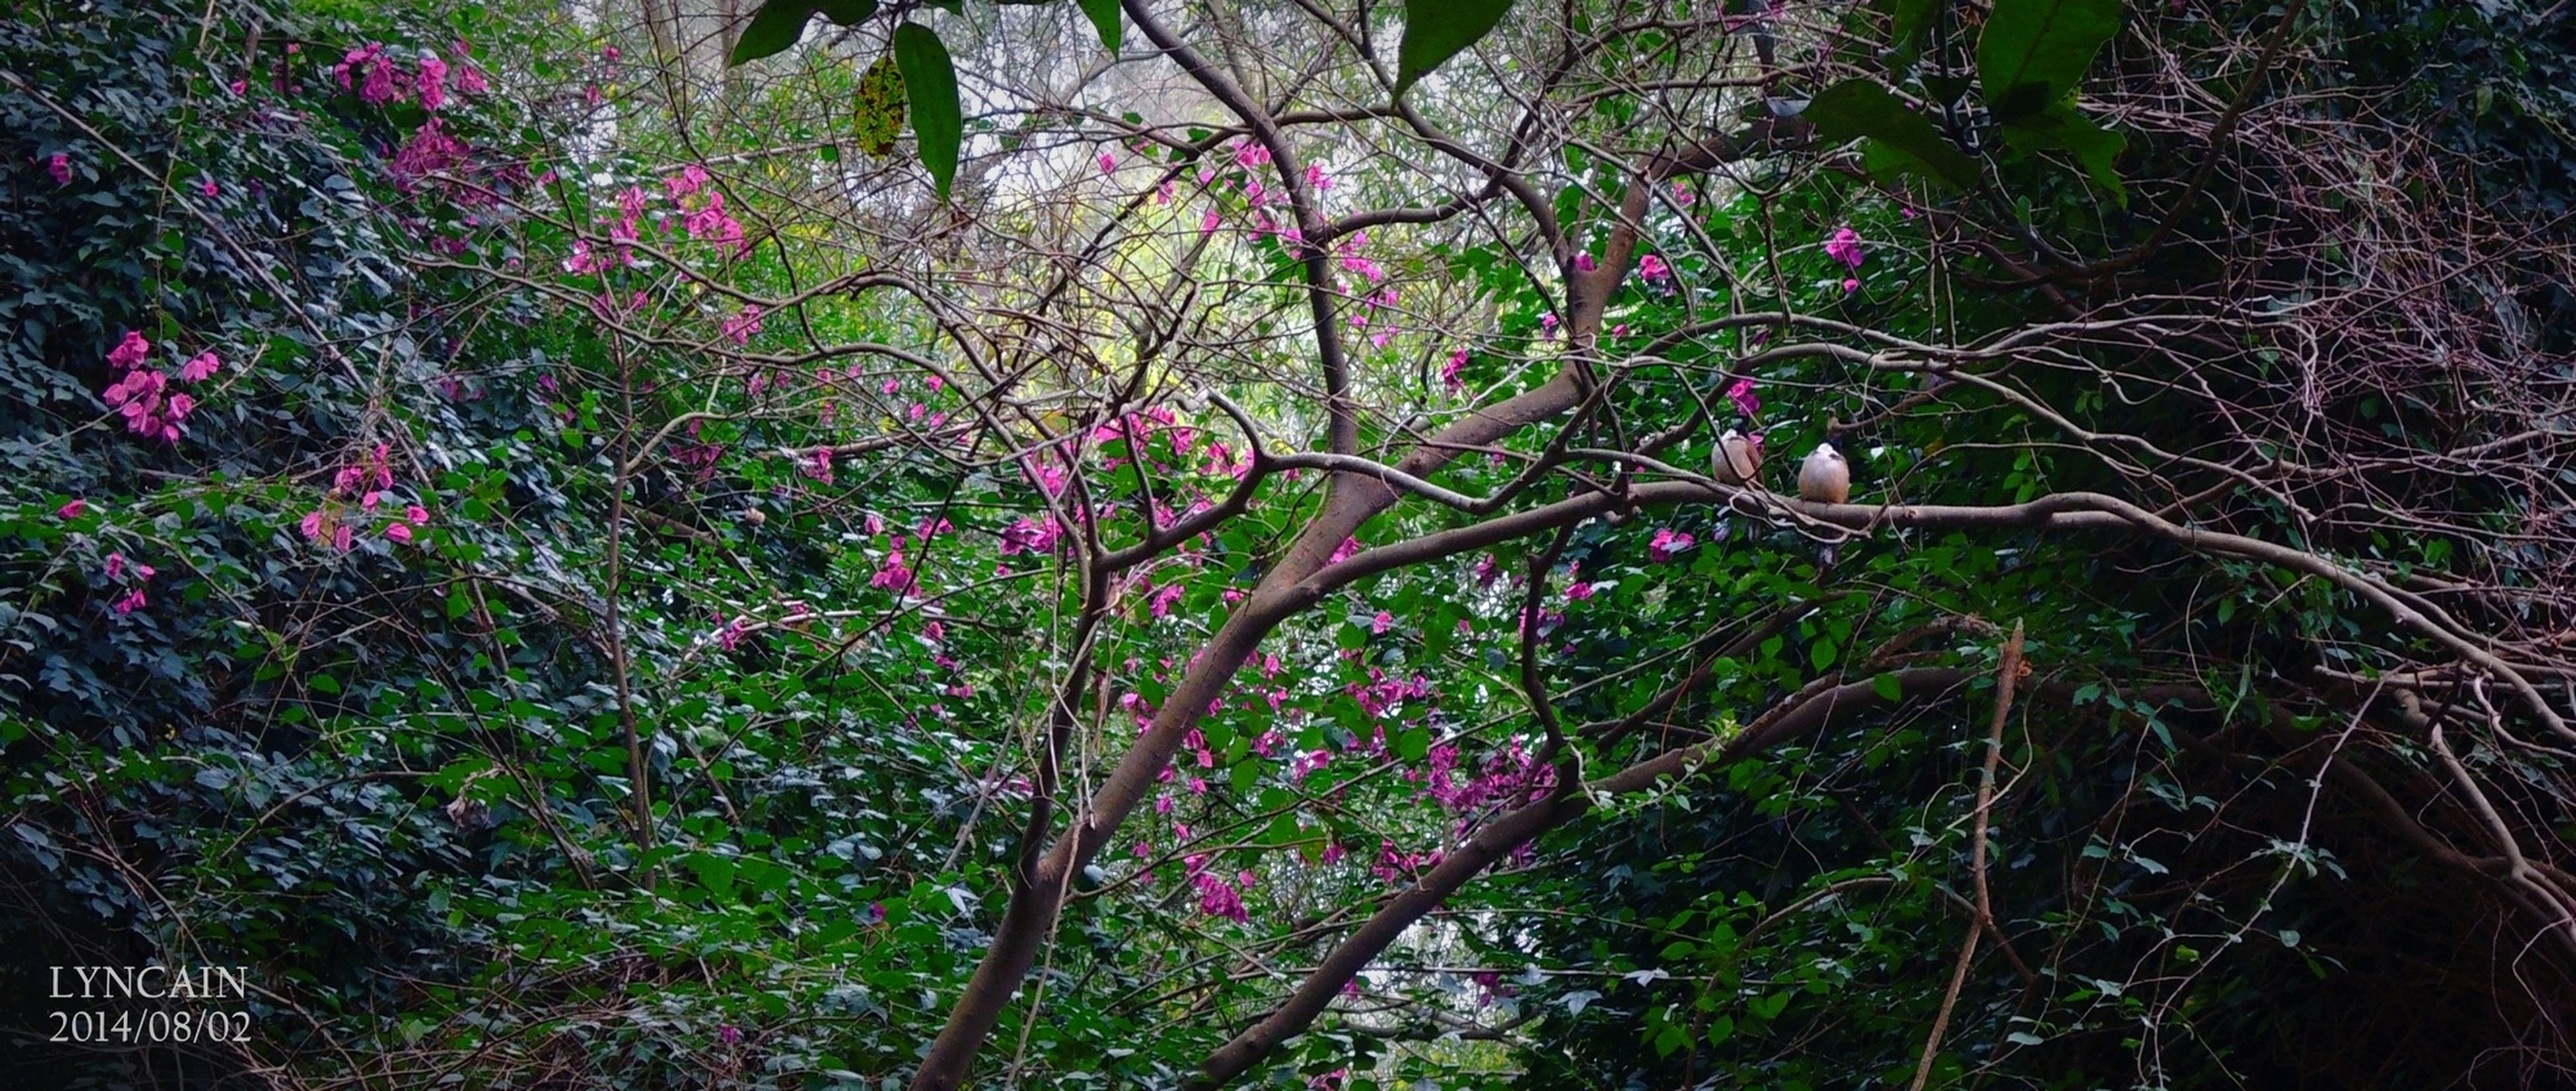 tree, growth, branch, beauty in nature, nature, flower, pink color, freshness, tranquility, low angle view, plant, purple, green color, outdoors, forest, day, no people, leaf, lush foliage, scenics